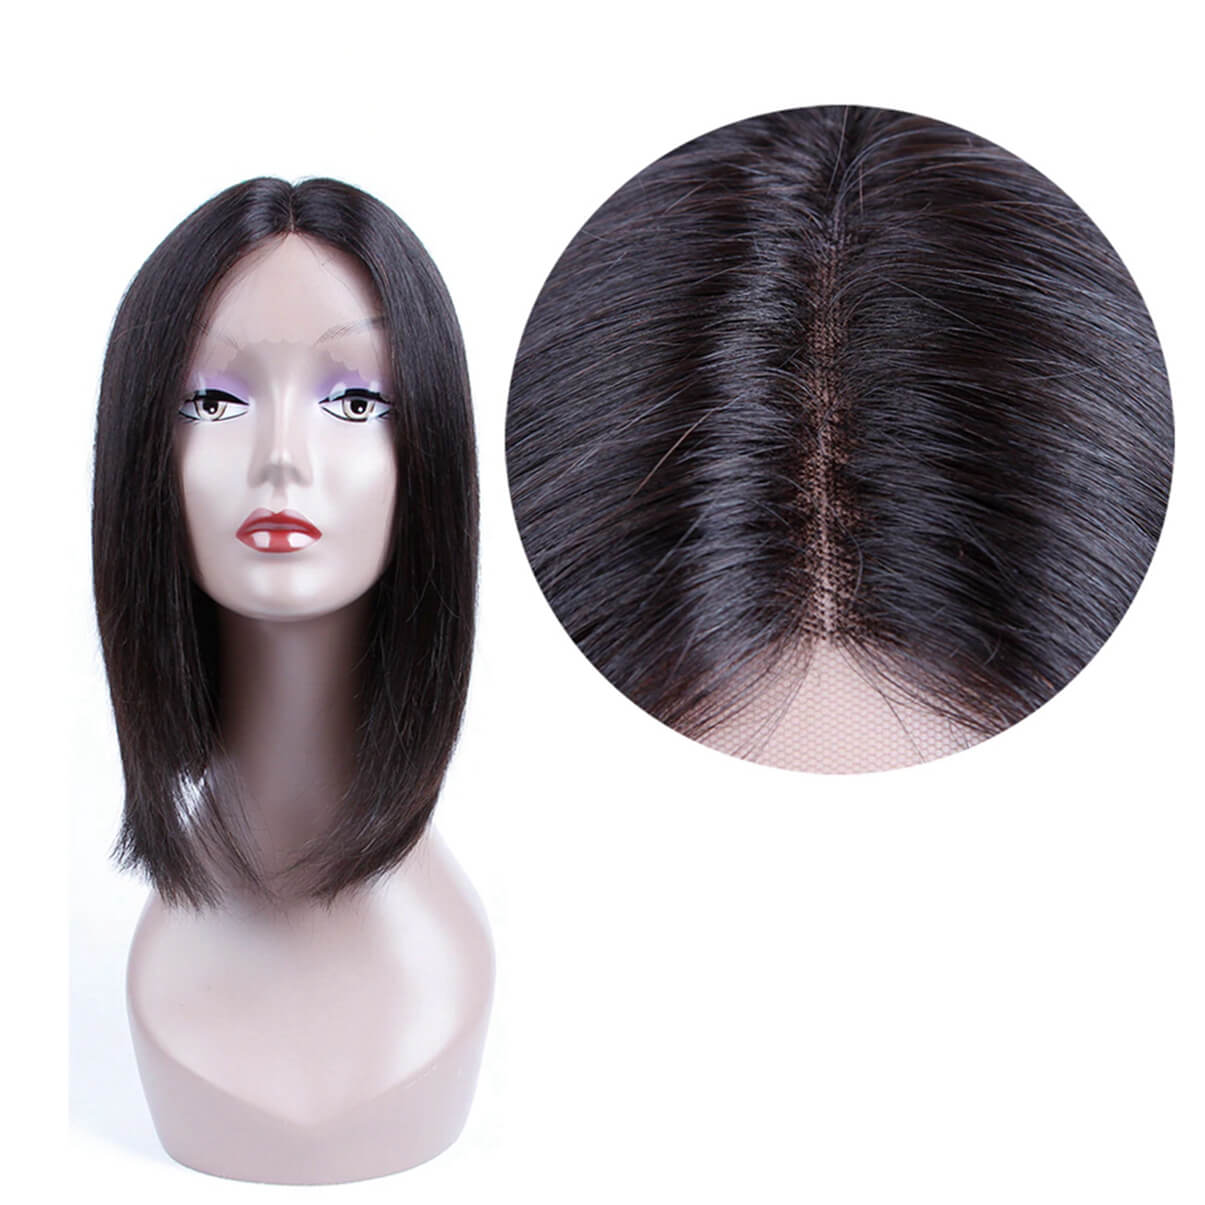 Lakihair Short Bob Wigs Virgin Brazilian Straight Hair Lace Front Wigs 180% Density U Part Bob Wigs With Baby Hair Bleached Knots